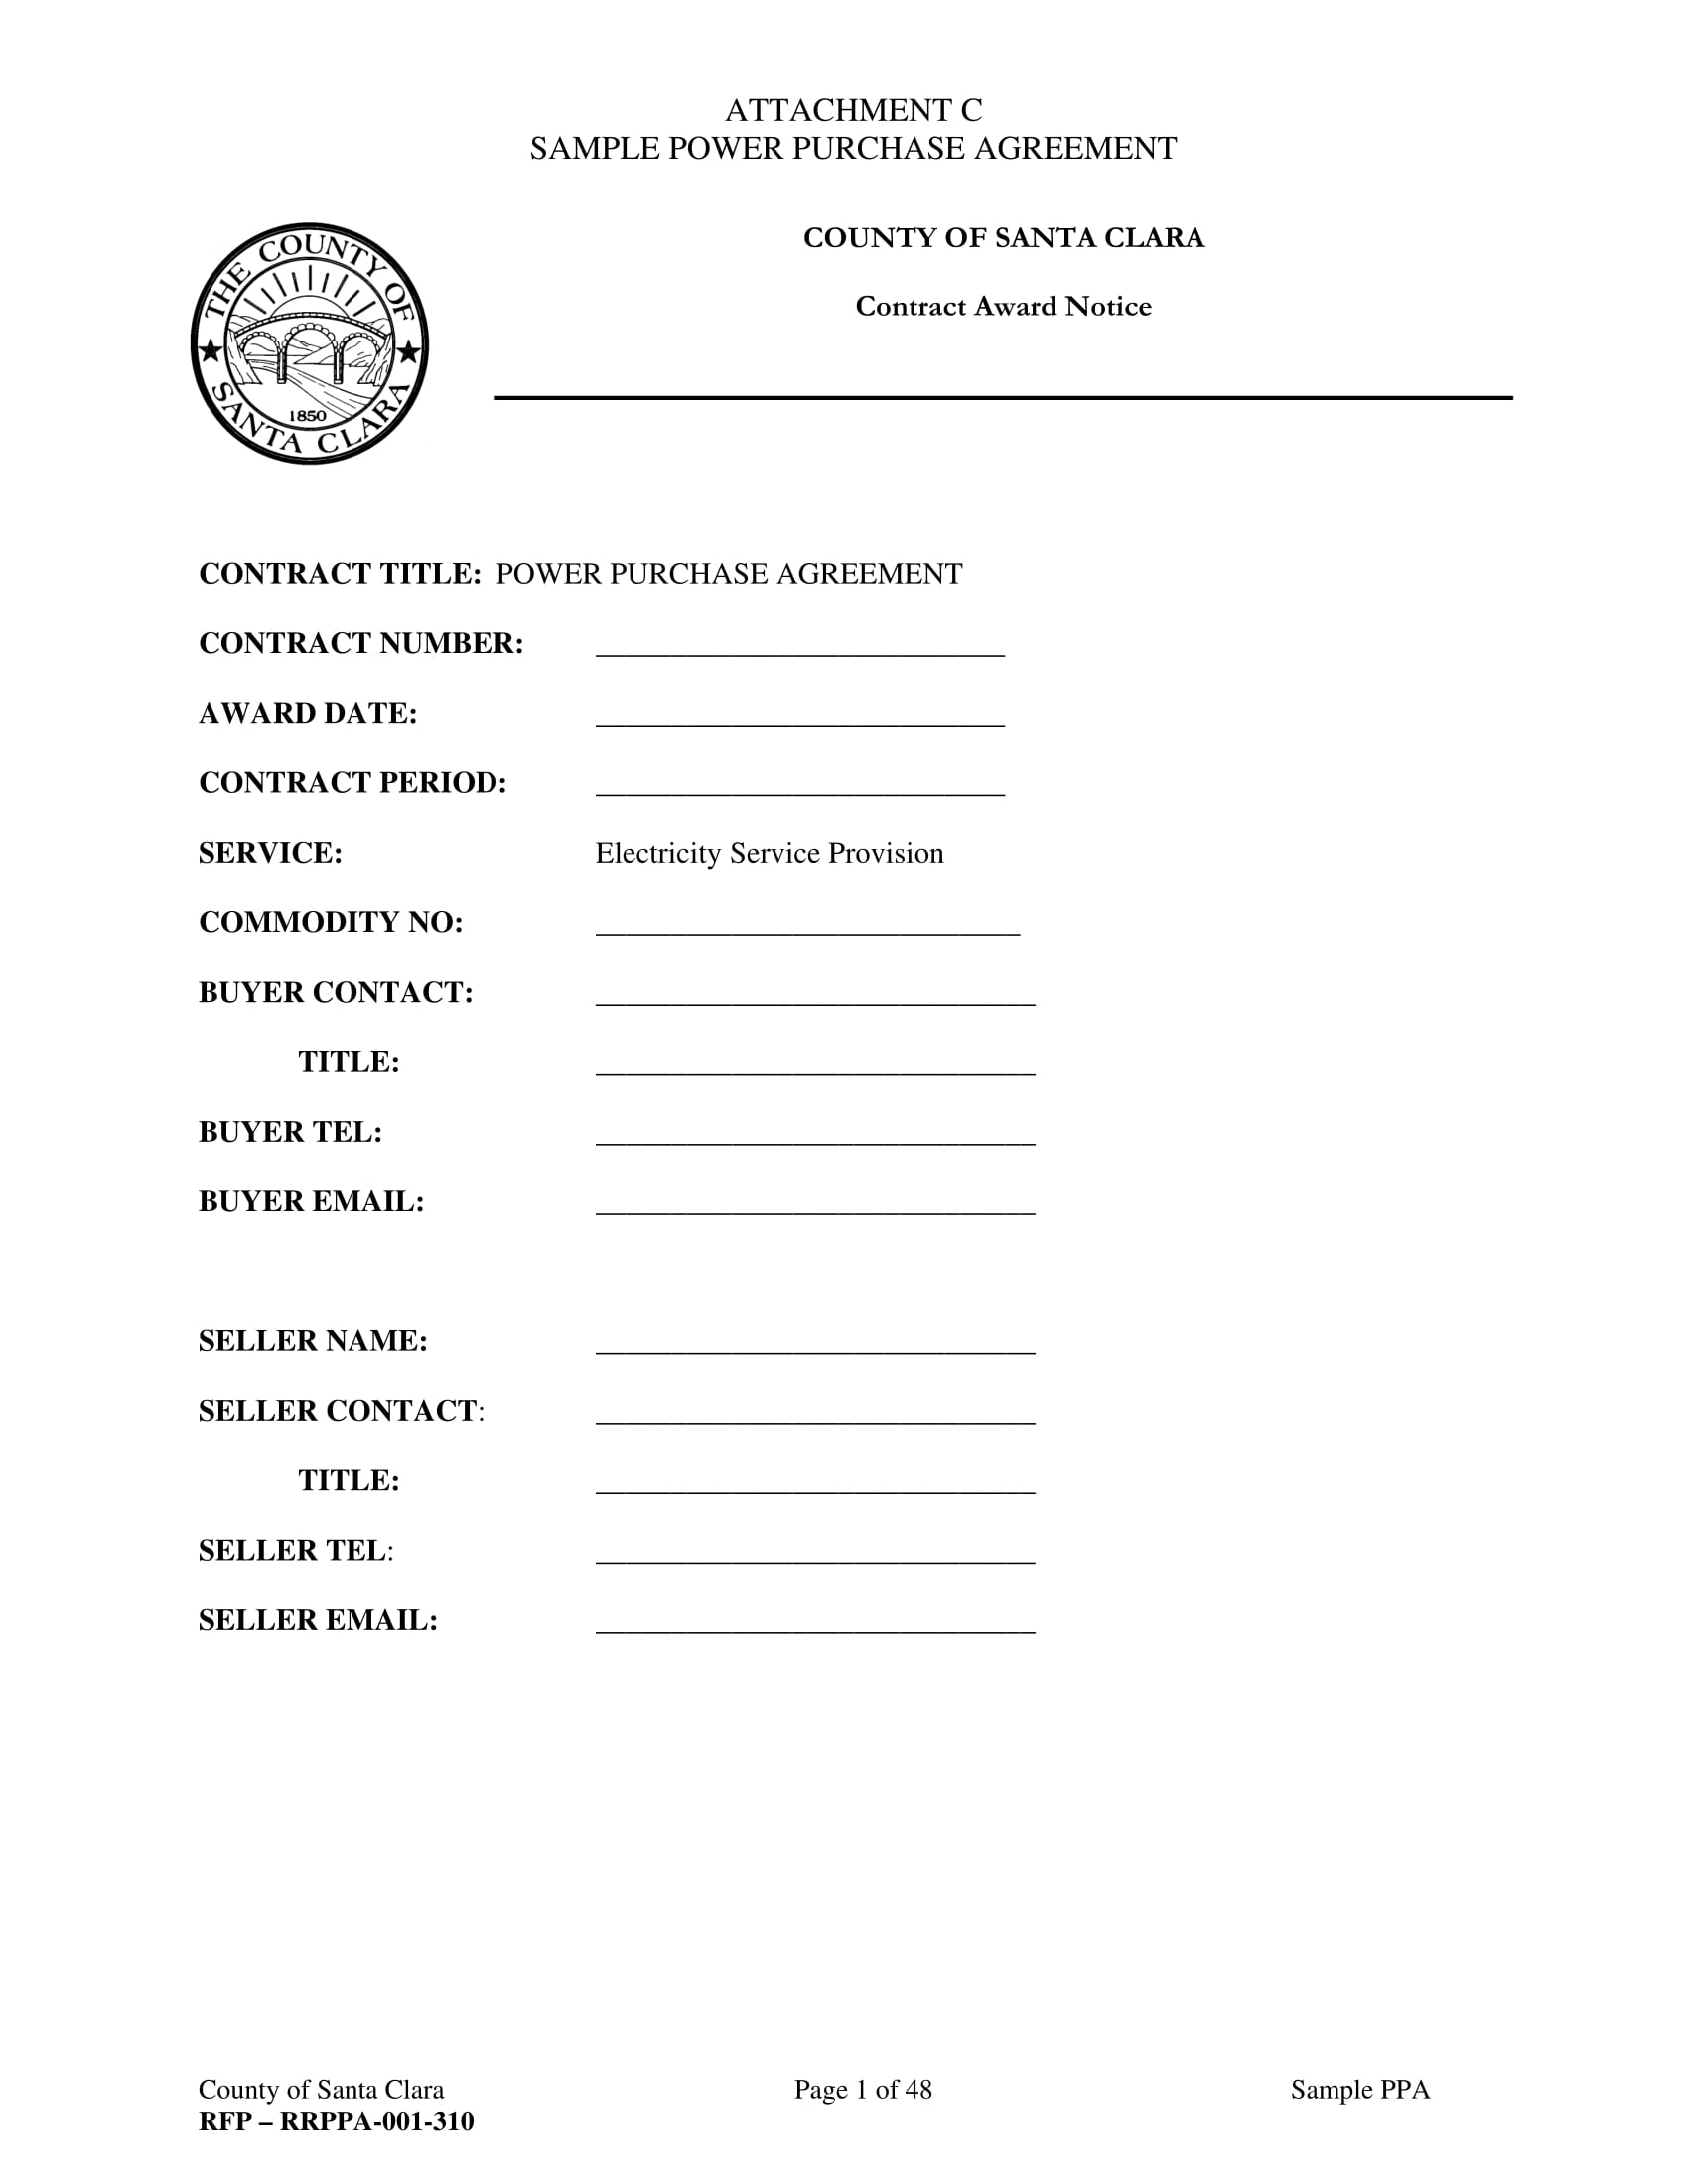 power purchase agreement form 01